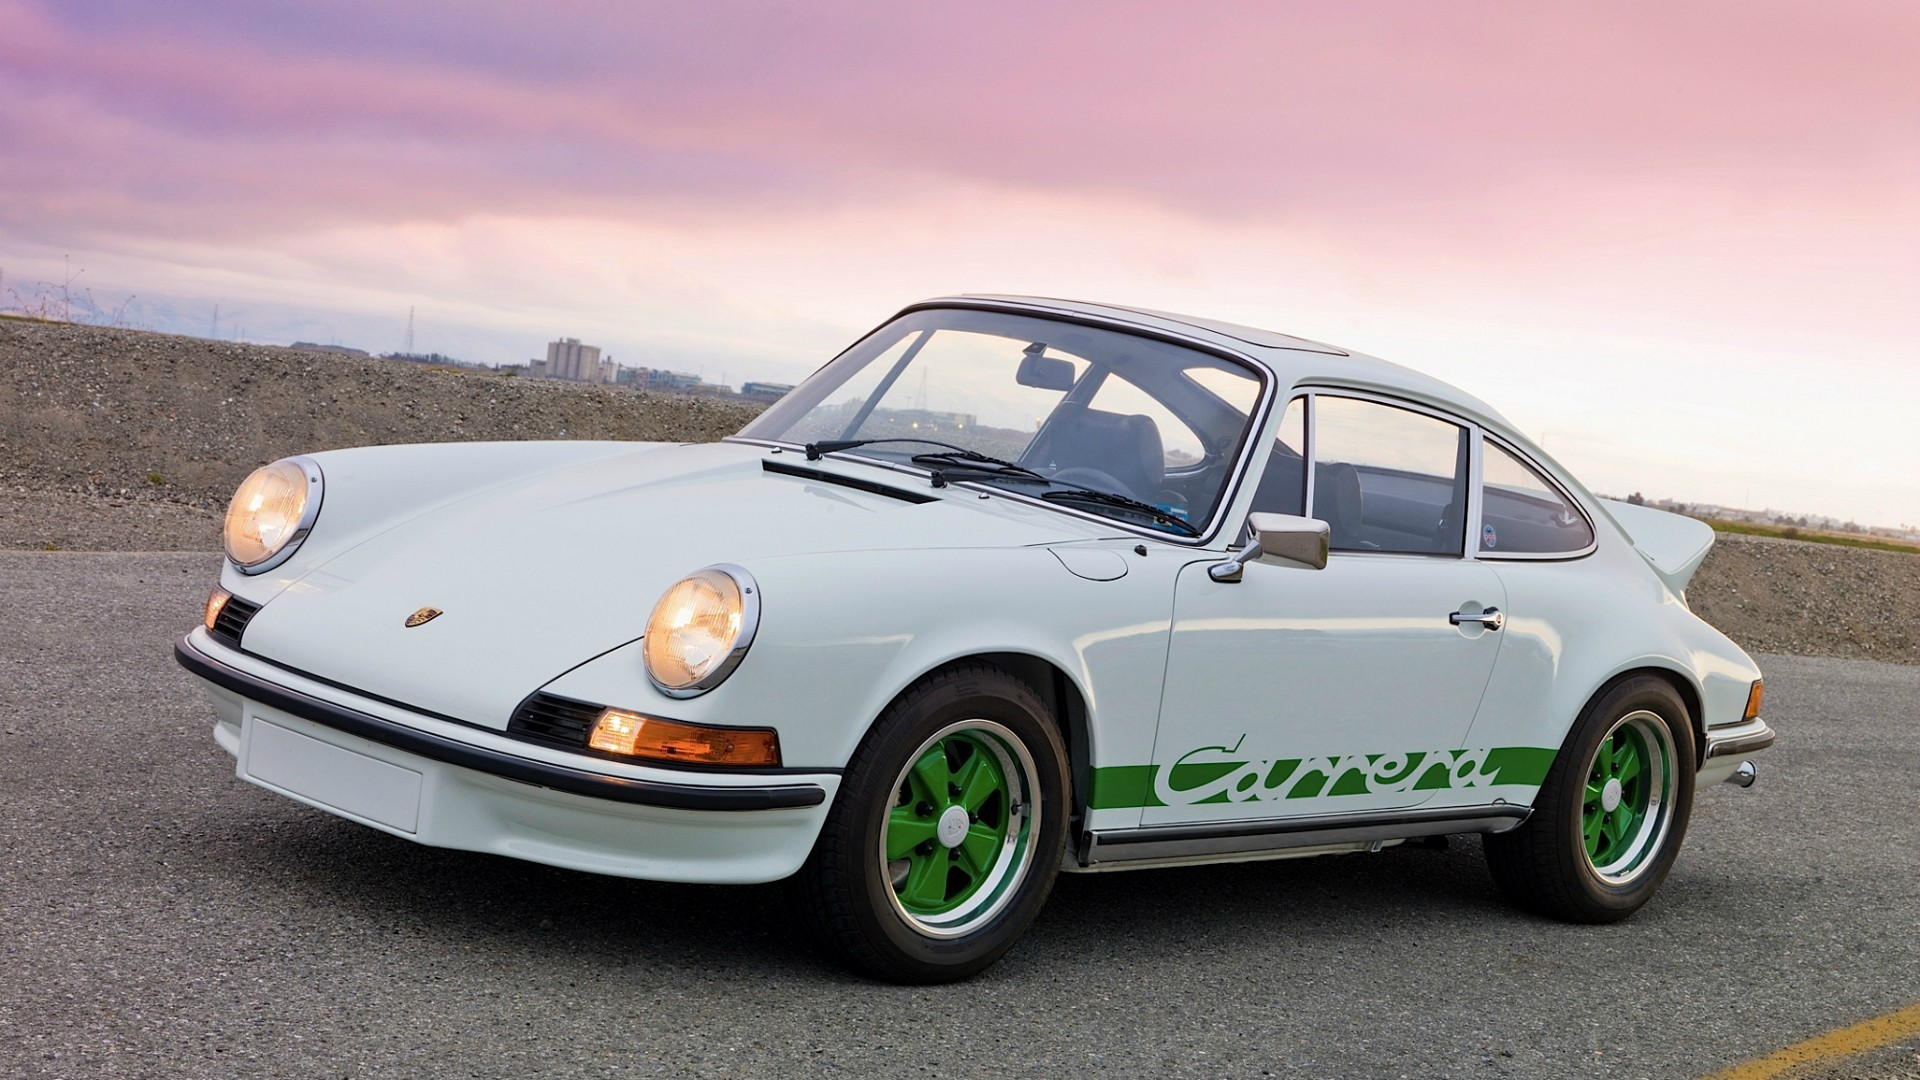 6 Porsche S Classic Cars Generations For Car Lovers